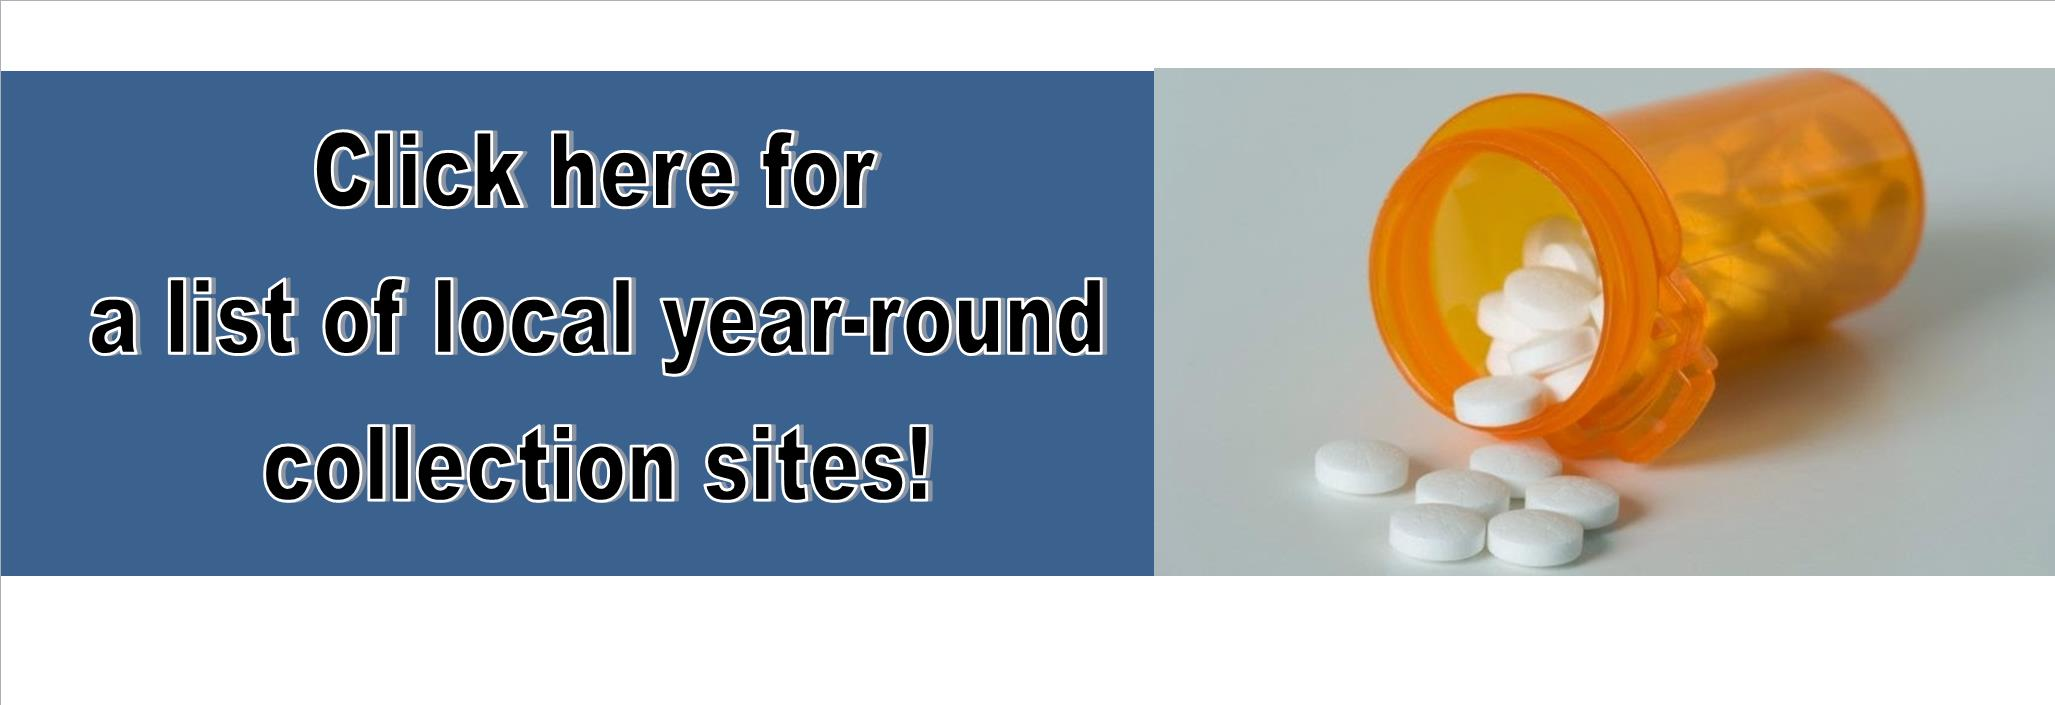 Safe secure local places to return medications year-round!